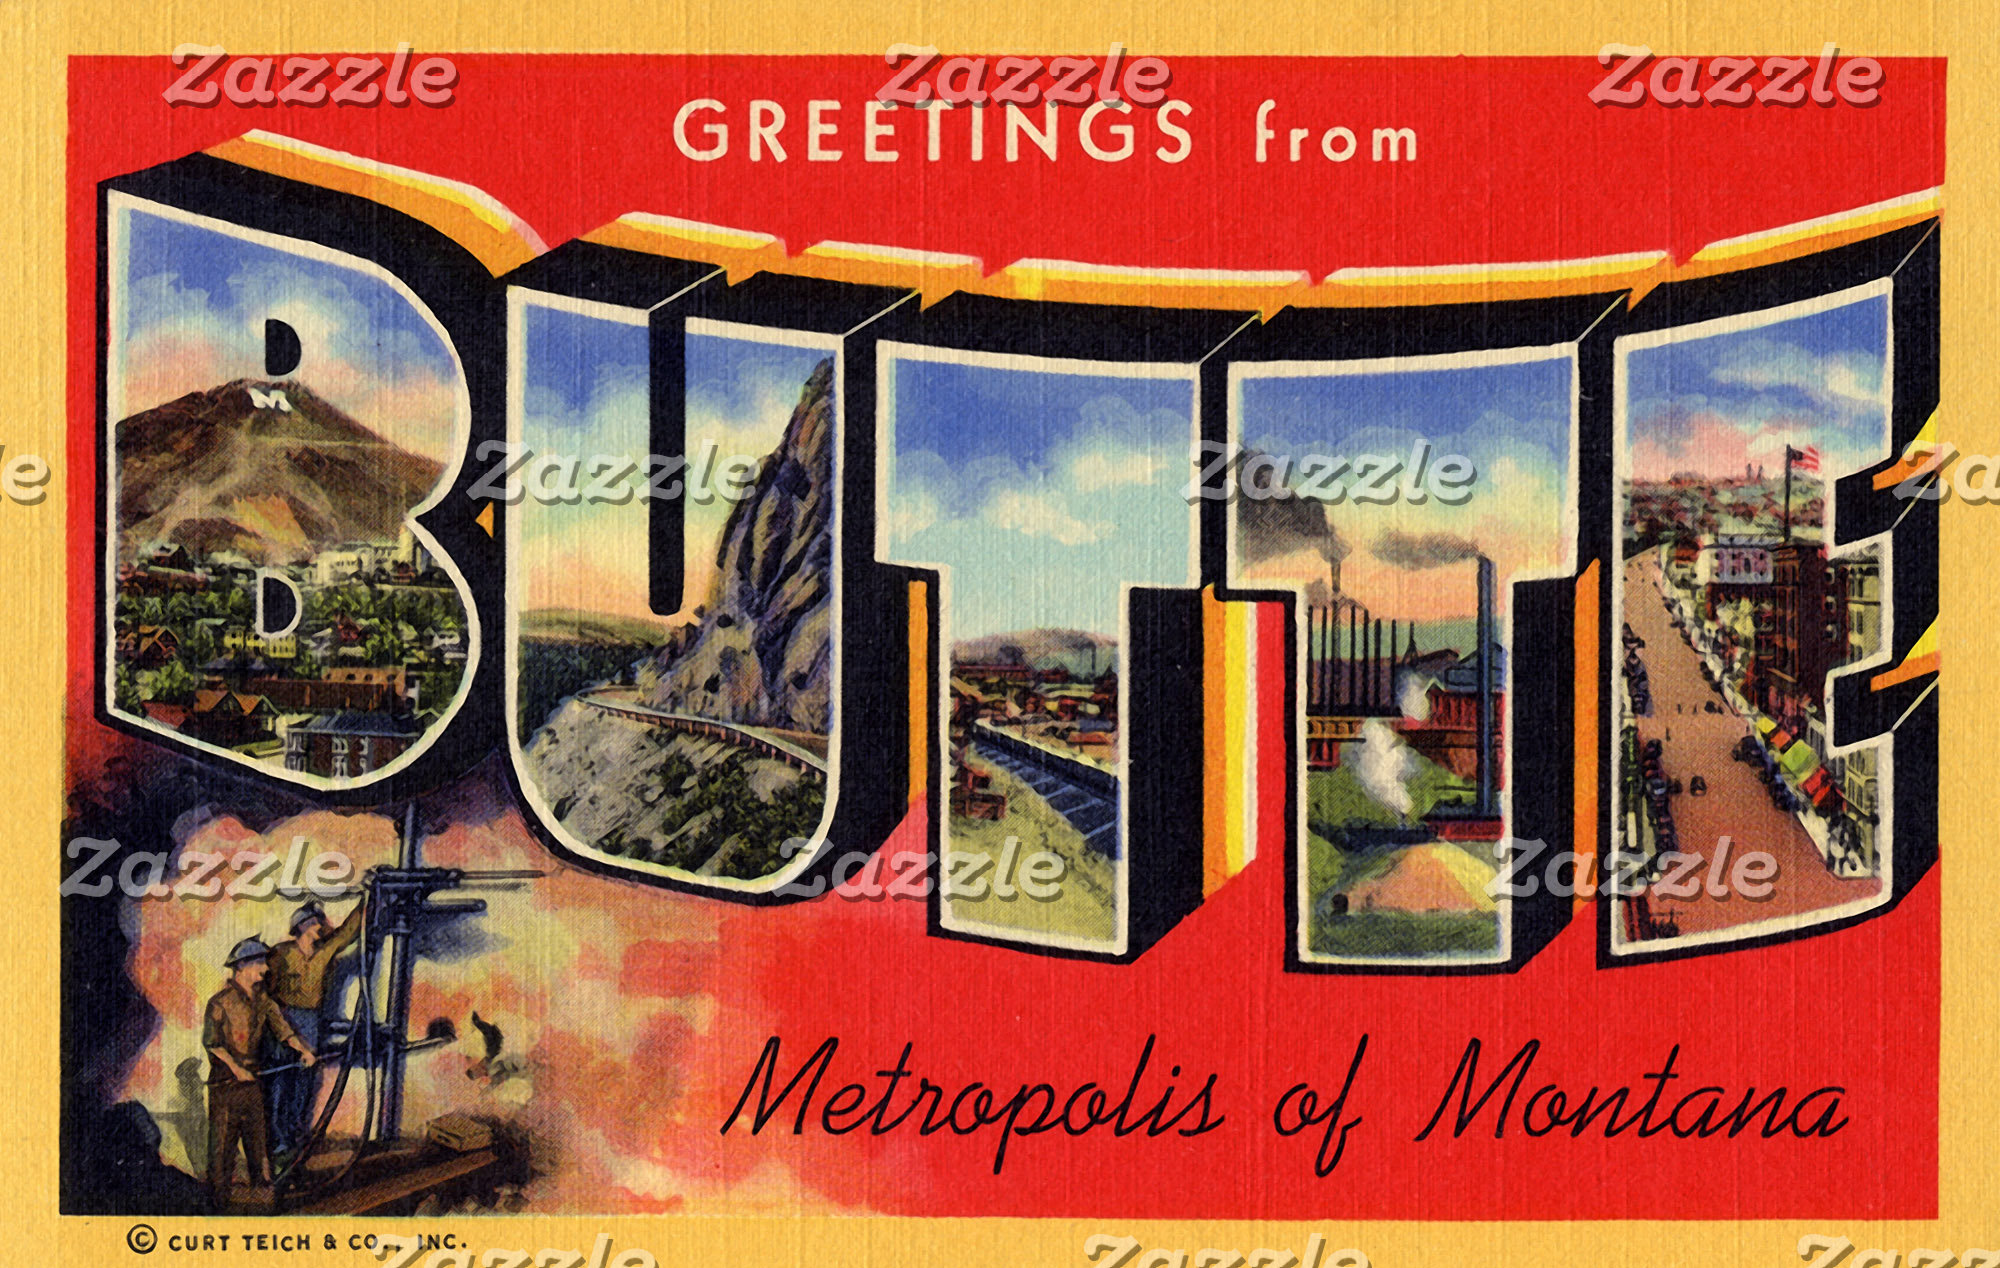 Greetings from Butte Metropolis of Montana